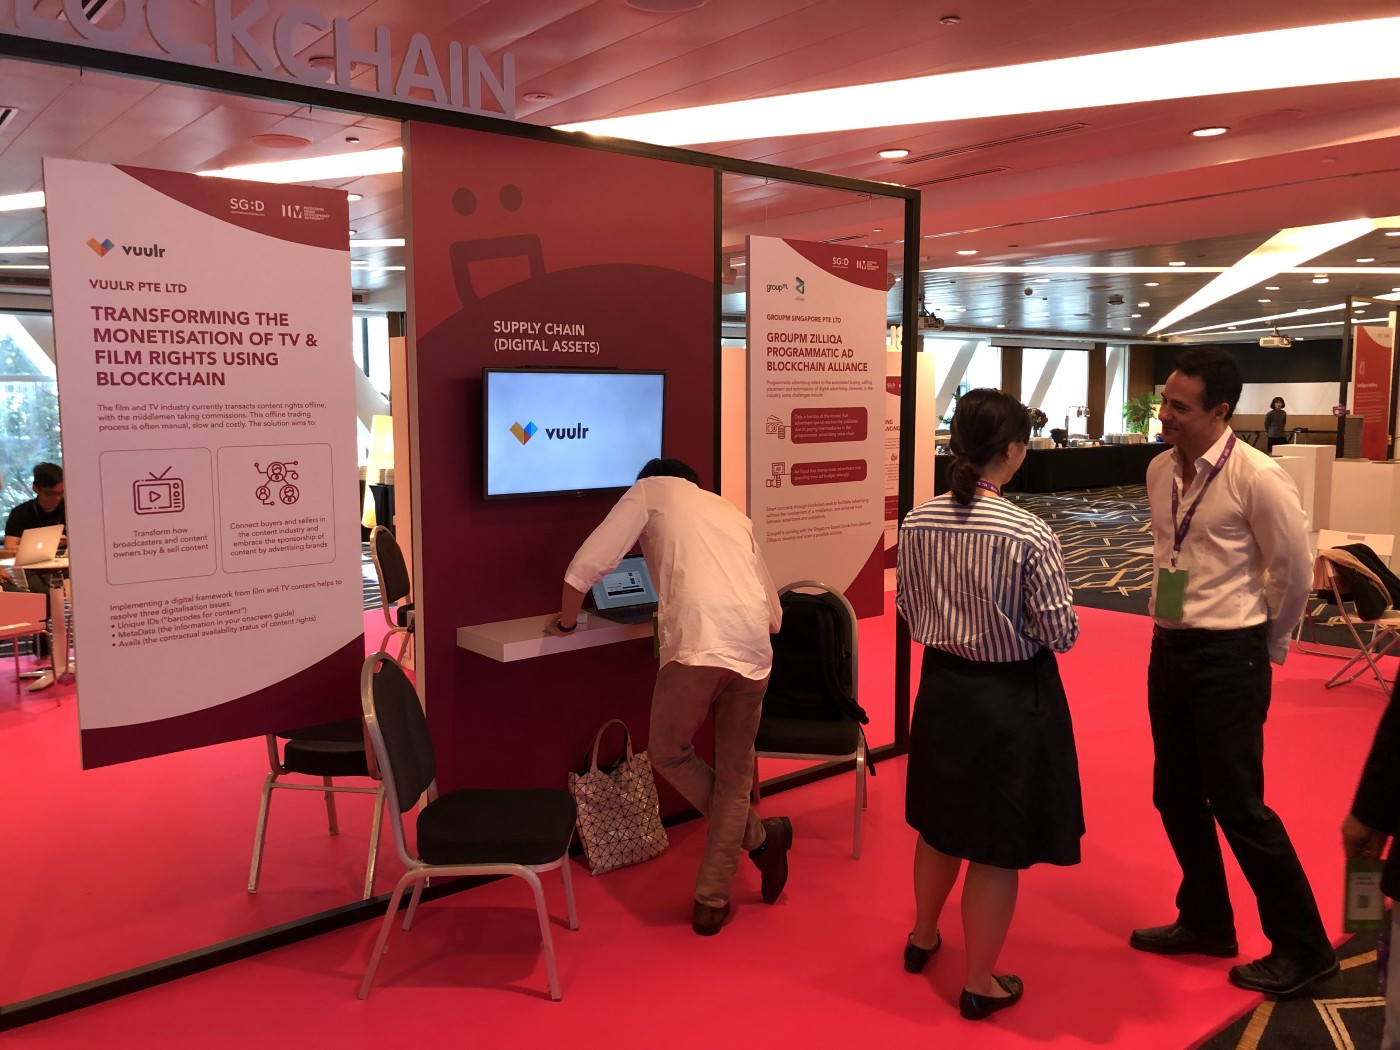 VUULR WINS SINGAPORE'S FIRST BLOCKCHAIN CHALLENGE - Vuulr - Medium